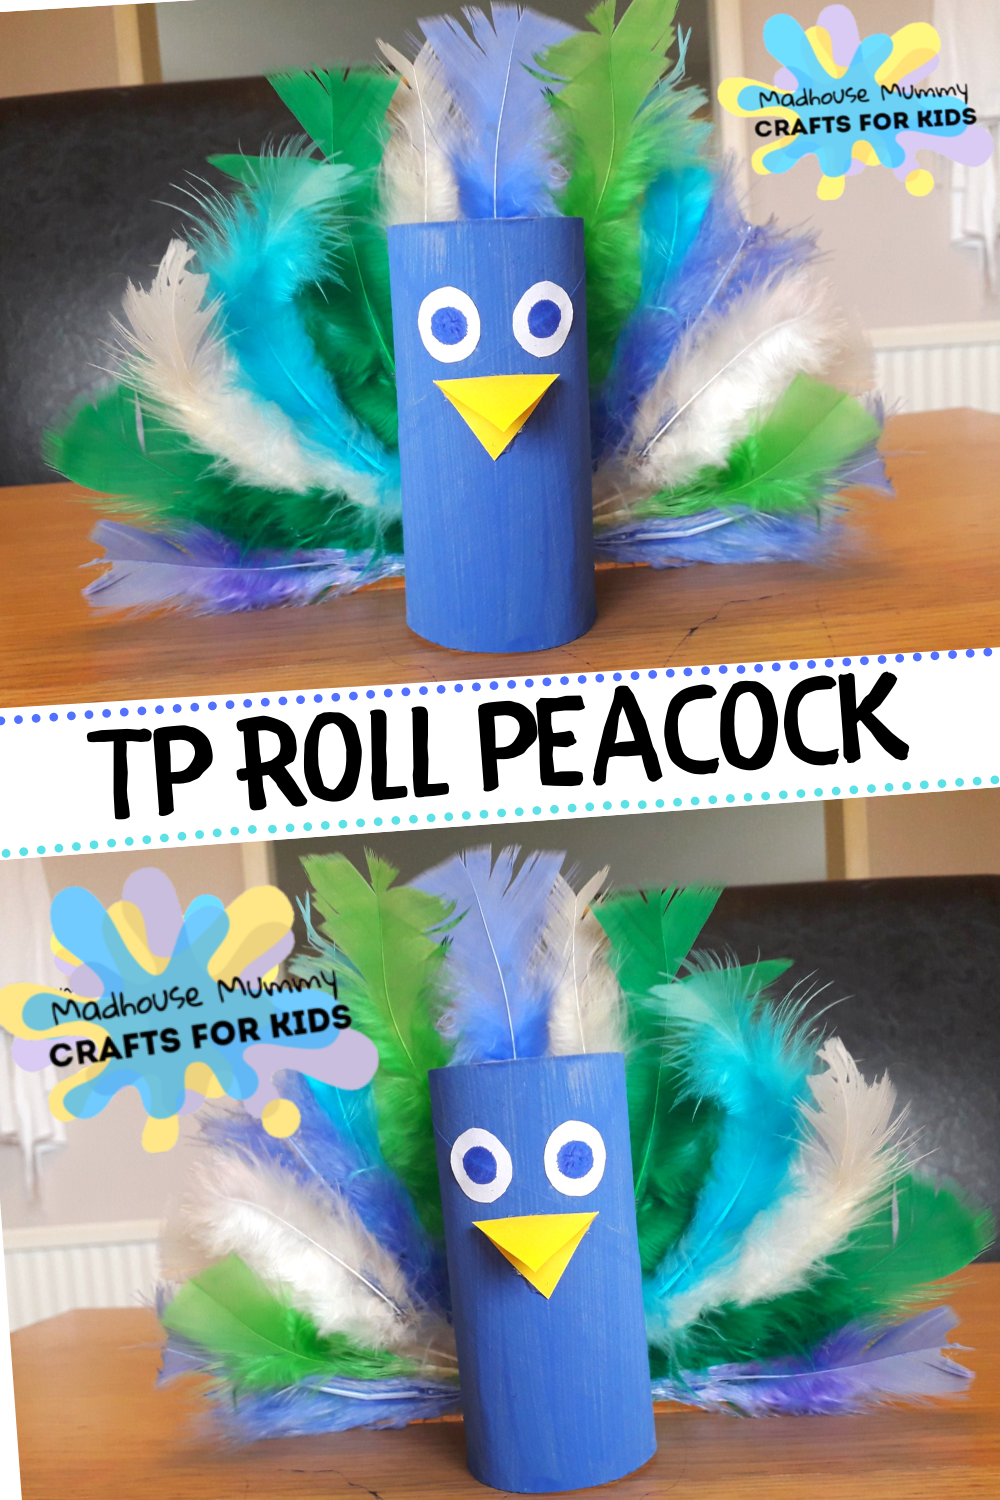 TP Roll/carboard tube peacock animal craft for kids